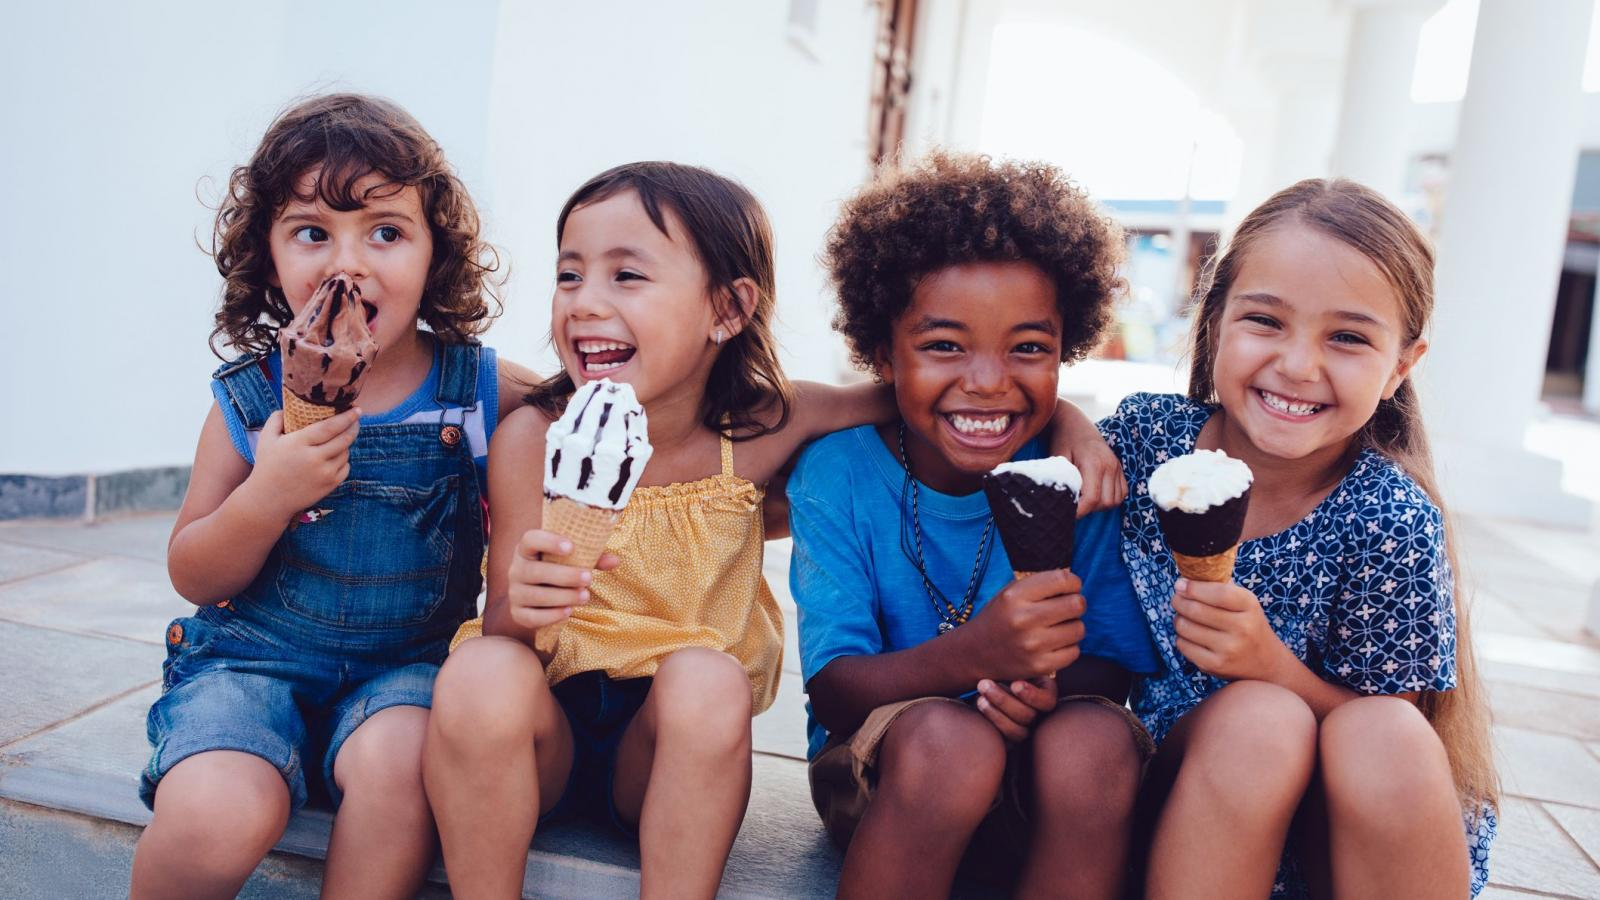 Four children sitting on a step and eating ice cream